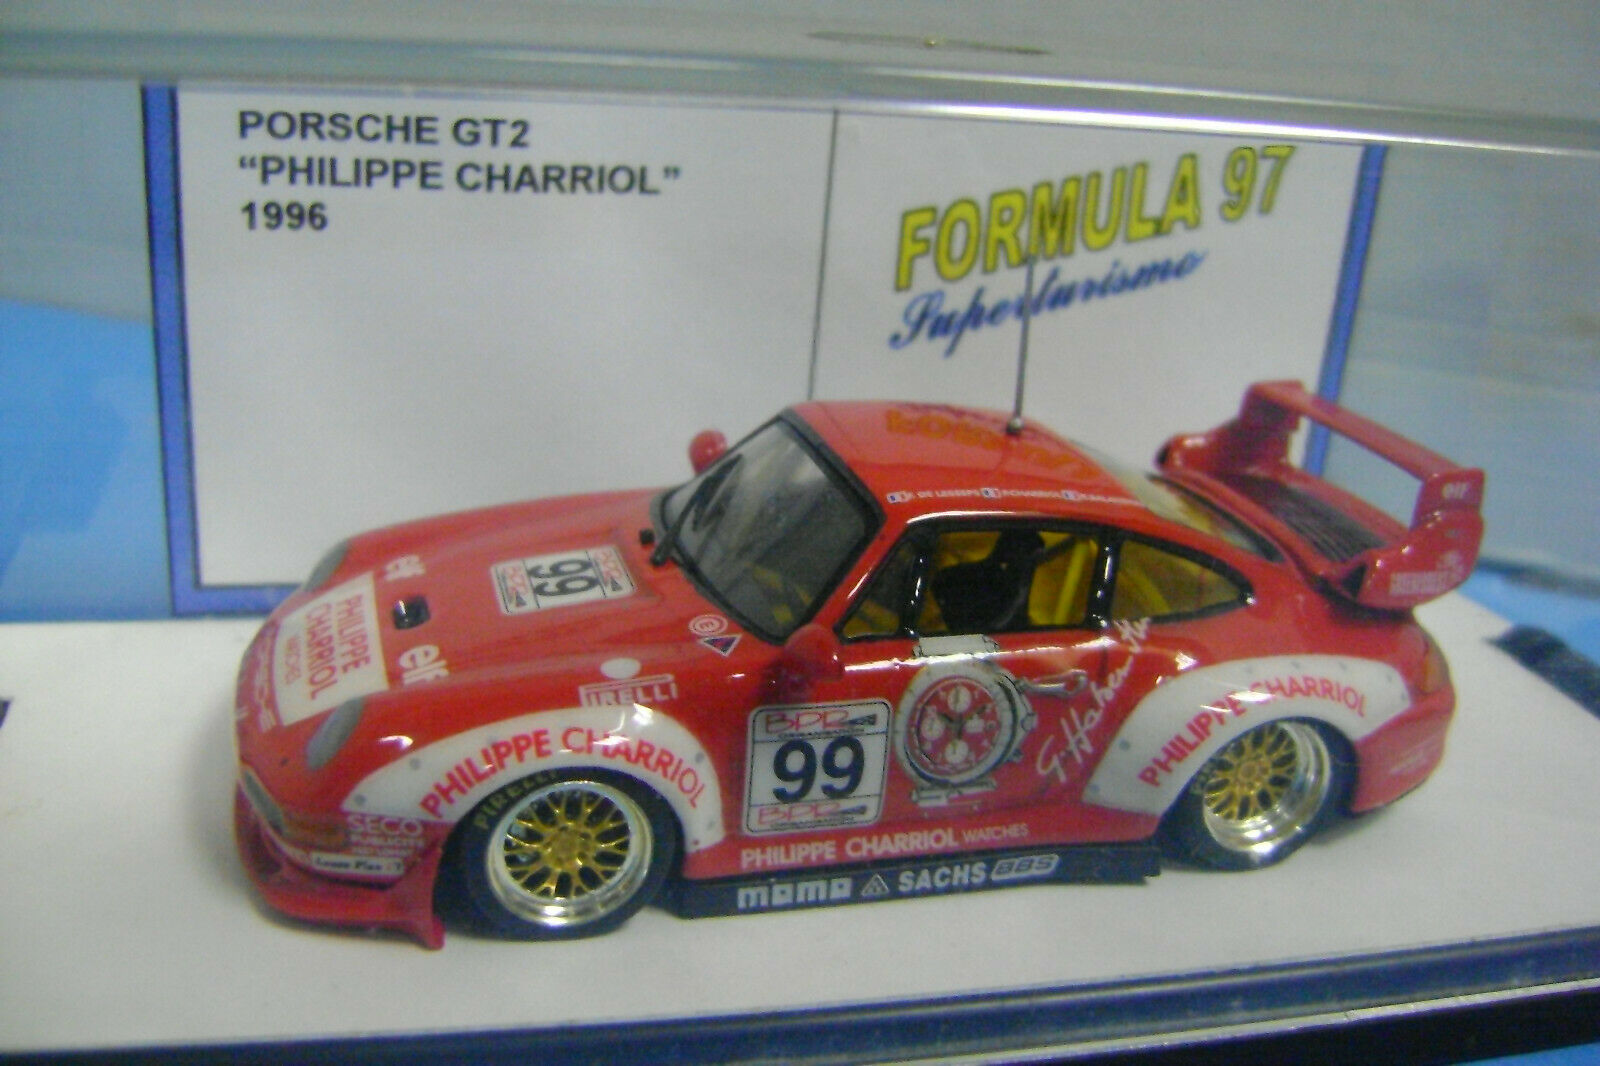 Porsche gt2 Philippe Charriol 1996 Formula 97 1 43 and special